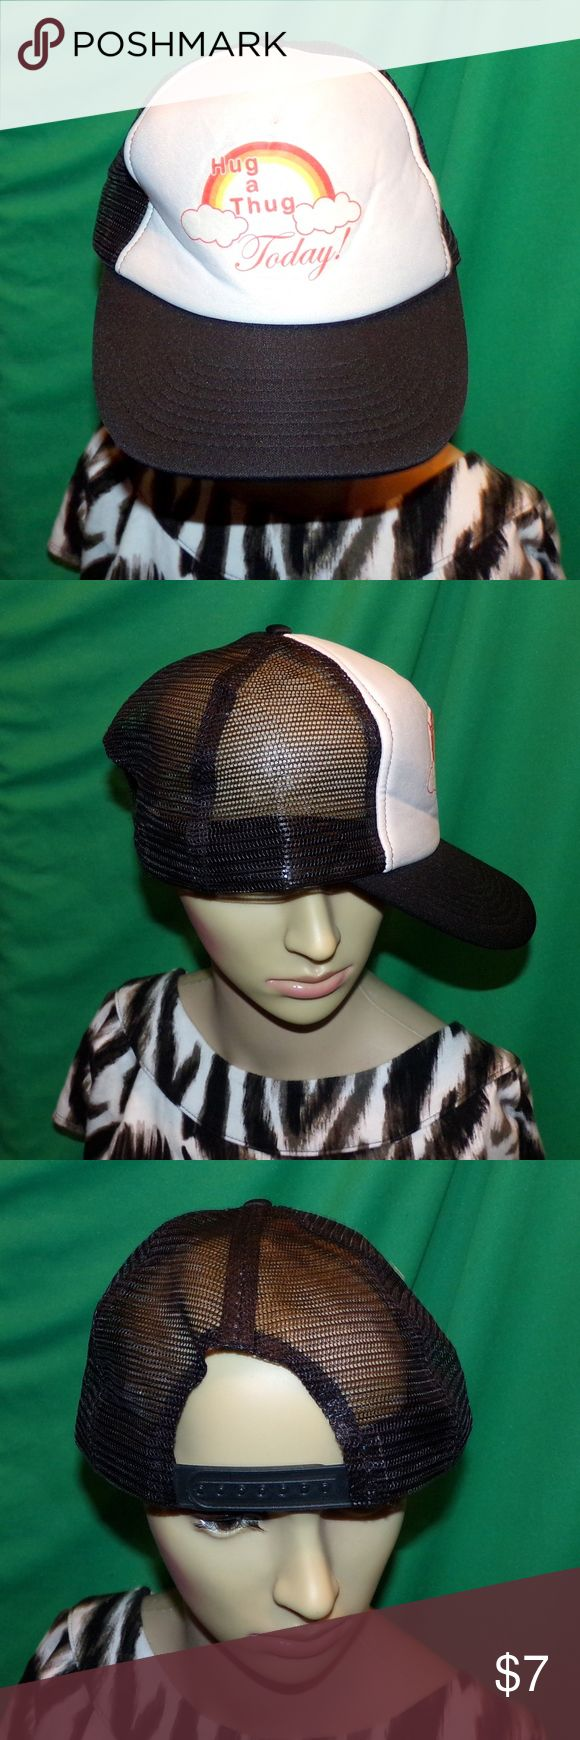 Hug A Thug Hat Religious Hat Novelty Hat Hug A Thug Hat Religious Hat Novelty Hat Baseball Cap 80's Vintage Hat LOW & Fast Shipping. From the 80's from a collection, it has the mesh rear. It has never been worn in excellent vintage condition hard to find things this old! Made by Attractive Headwear and it has the Snap Adjuster for a perfect fit every time. Bundle 2 or more of our items for a discount or make us a OFFER the Fairies here love OFFERs :) Attractive Headwear Accessories Hats